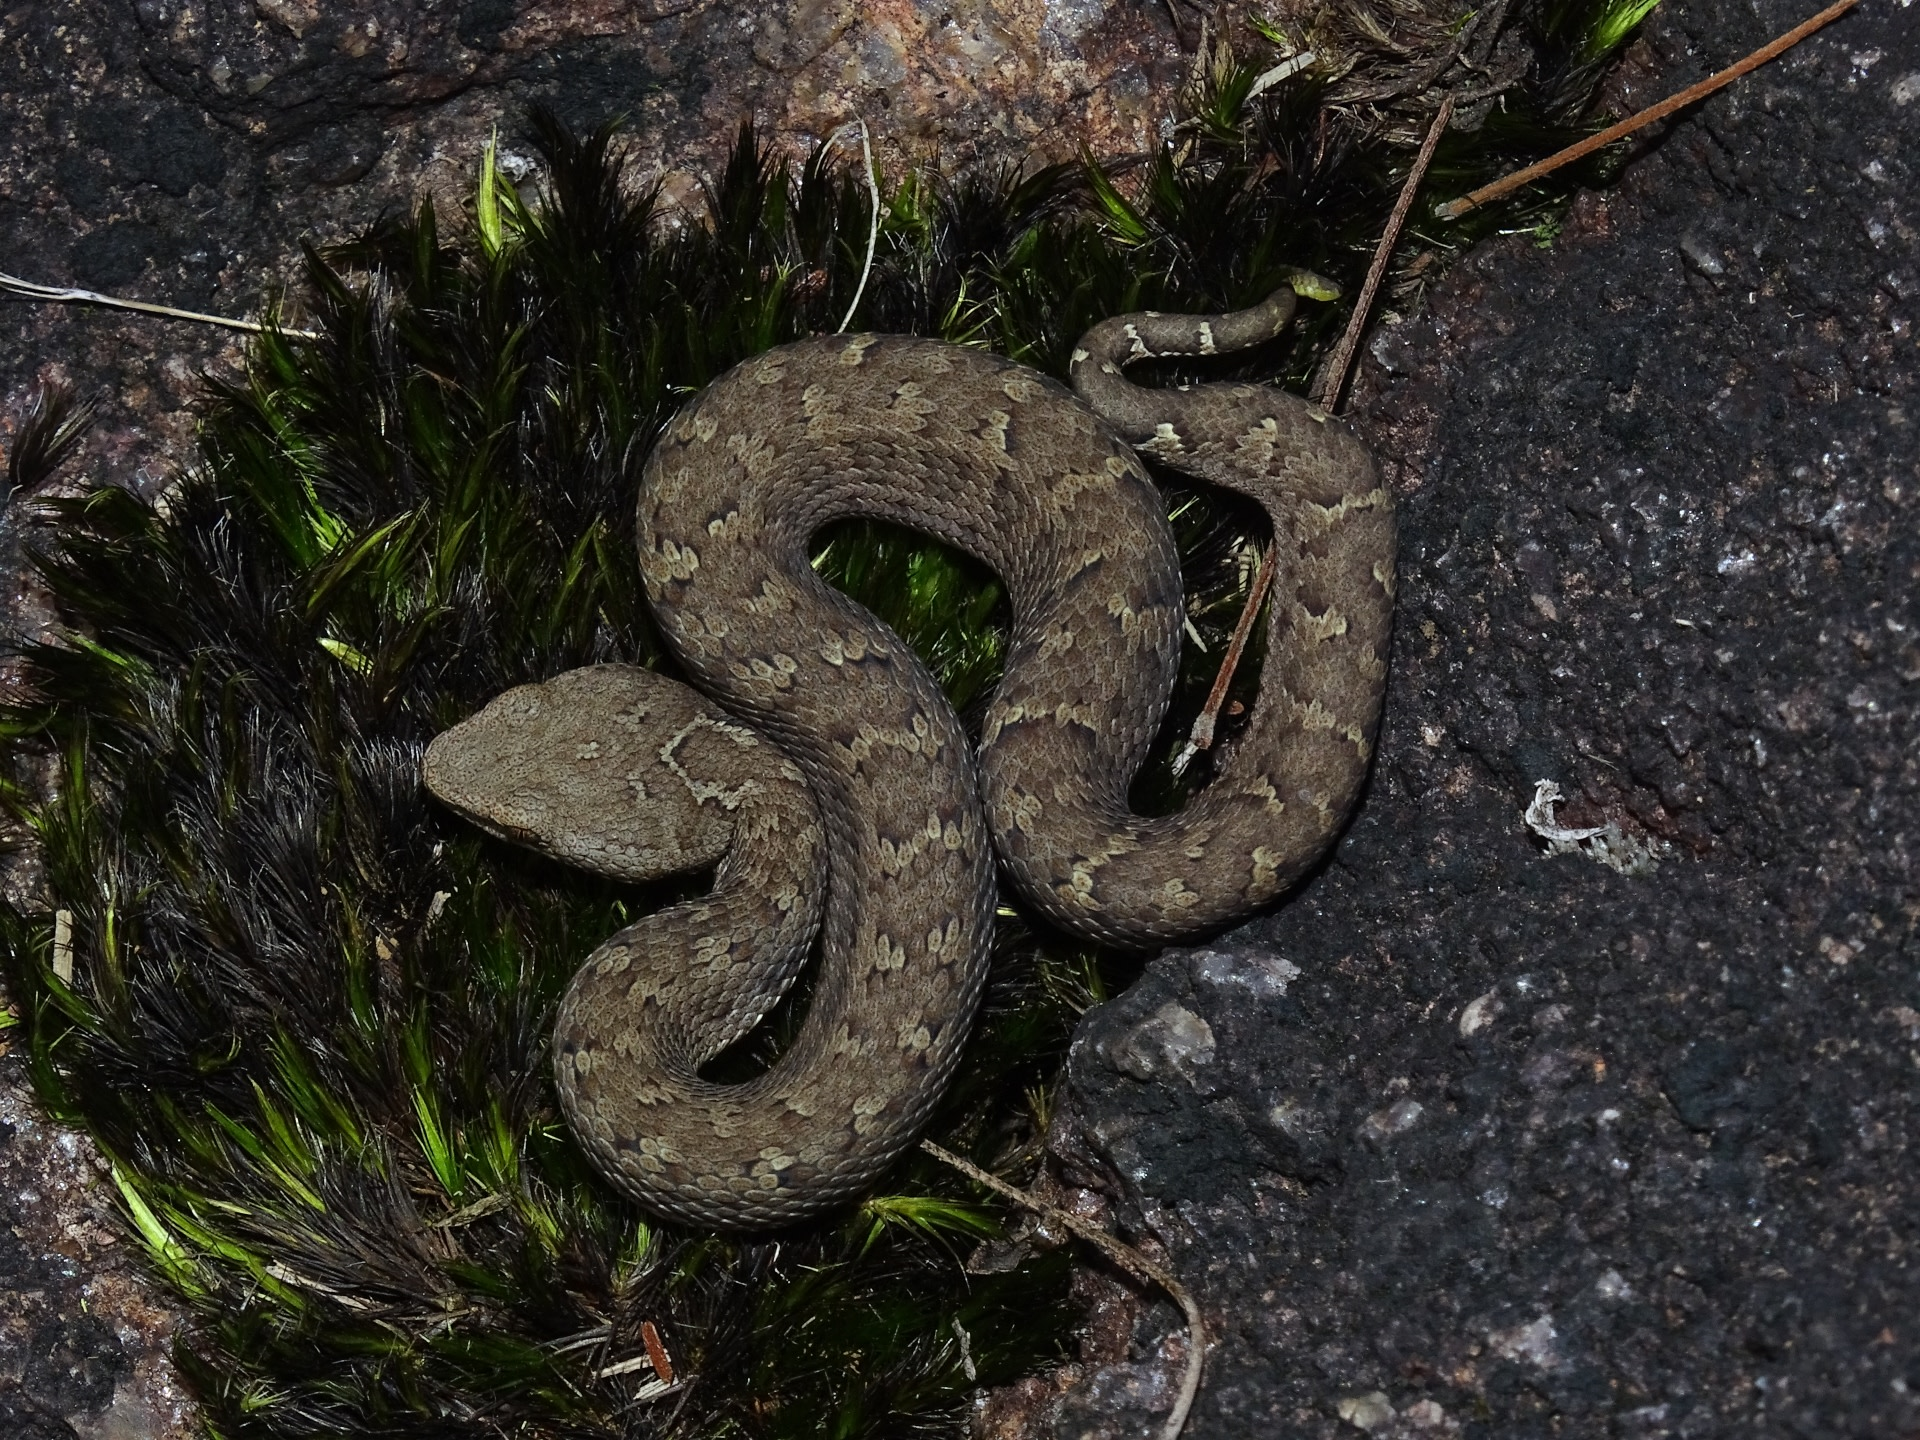 Horseshoe vipers are named for the horseshoe-shaped (inverted 'U') mark on the nape of their neck. They enjoy basking in the sun, perched on rocks covered with moss and lichen. Photo: Gnaneswar CH